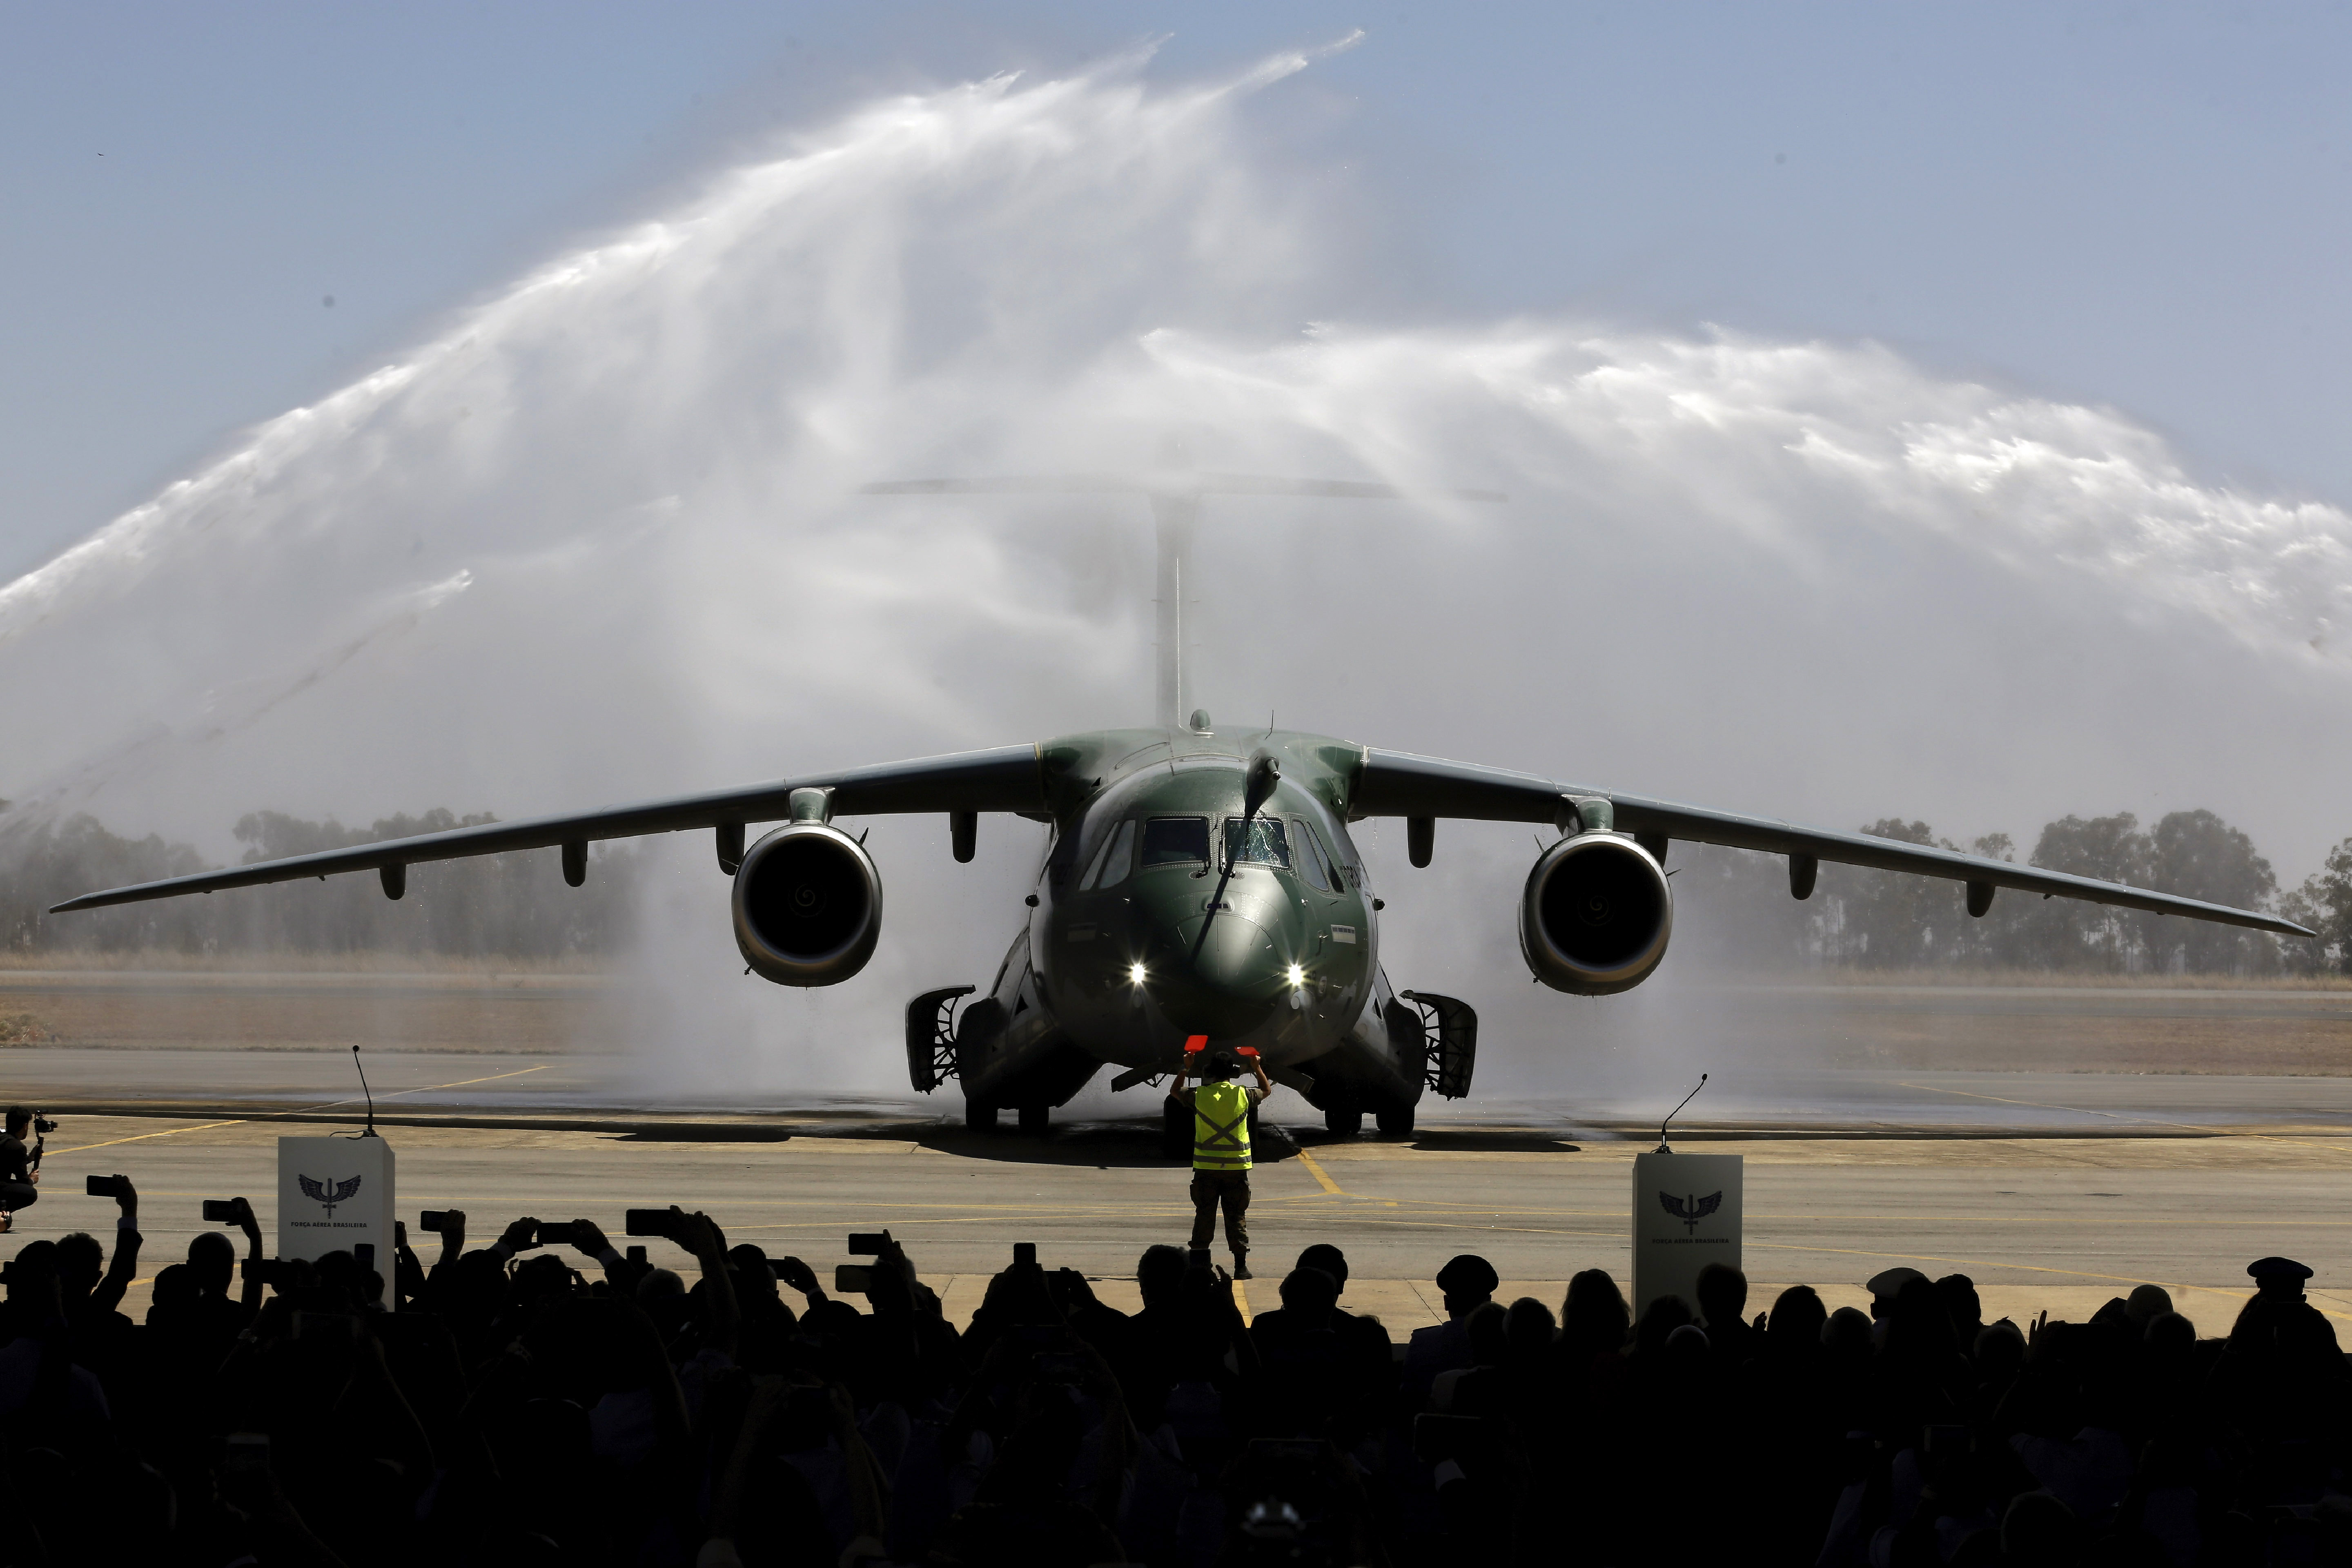 Plumes of water form arches over a KC-390 plane during a water salute at the air base in Anapolis, Brazil, Wednesday, Sept. 4, 2019. The new aircraft is capable of transporting and launching cargo and troops, as well as a wide range of missions: air evacuation, search and rescue, firefighting, air refueling and humanitarian aid. (AP Photo/Eraldo Peres)